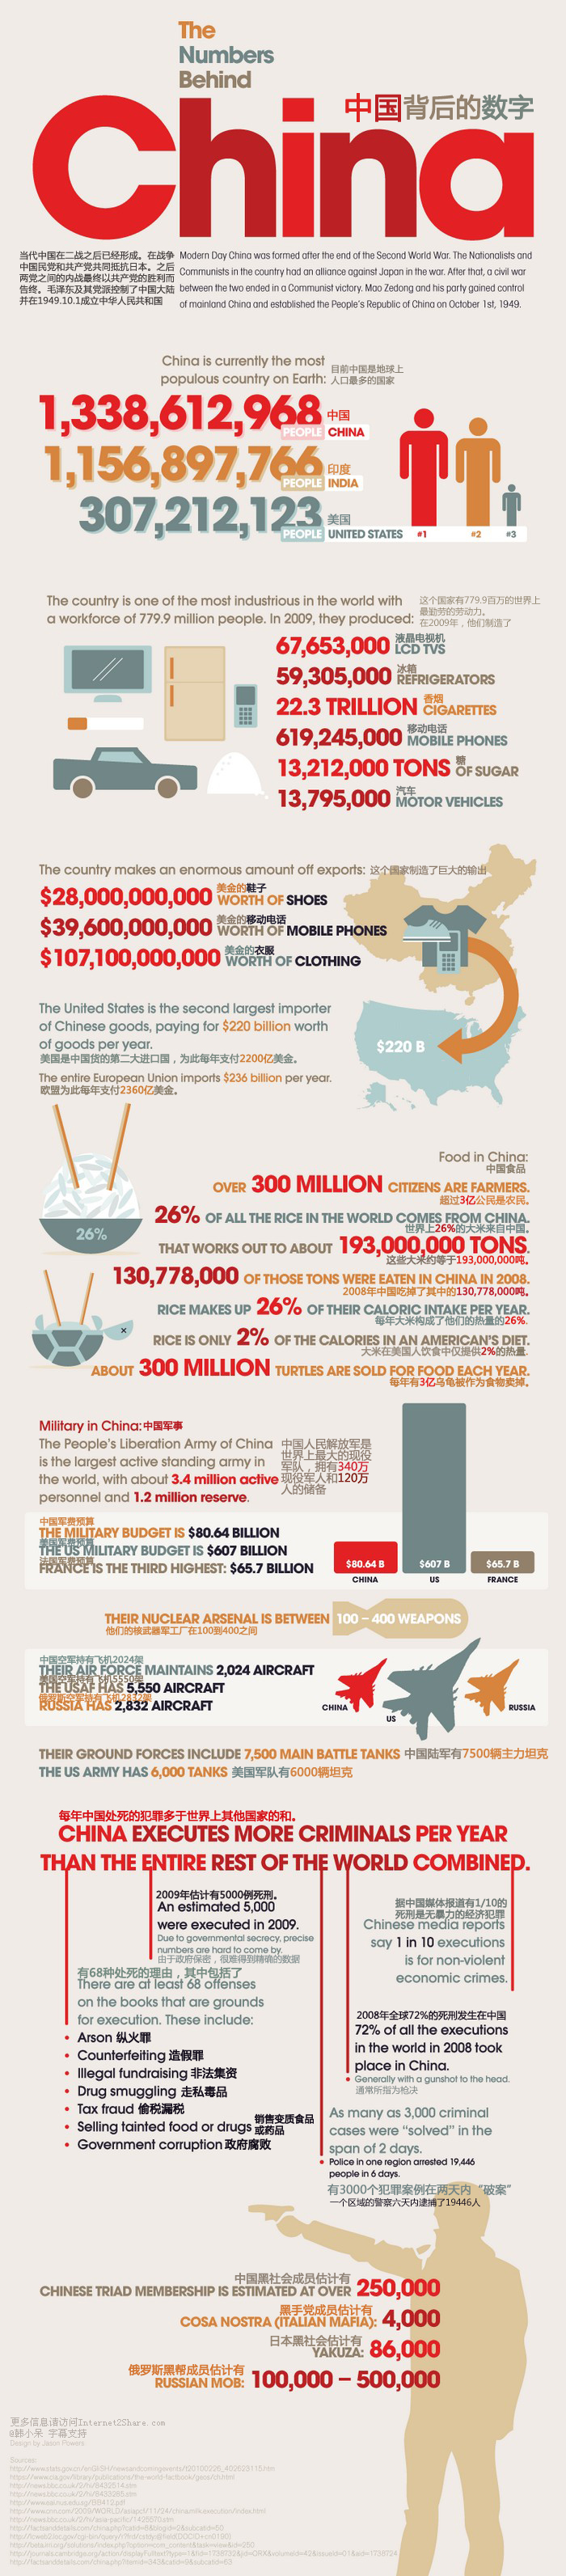 Chine-statistiques